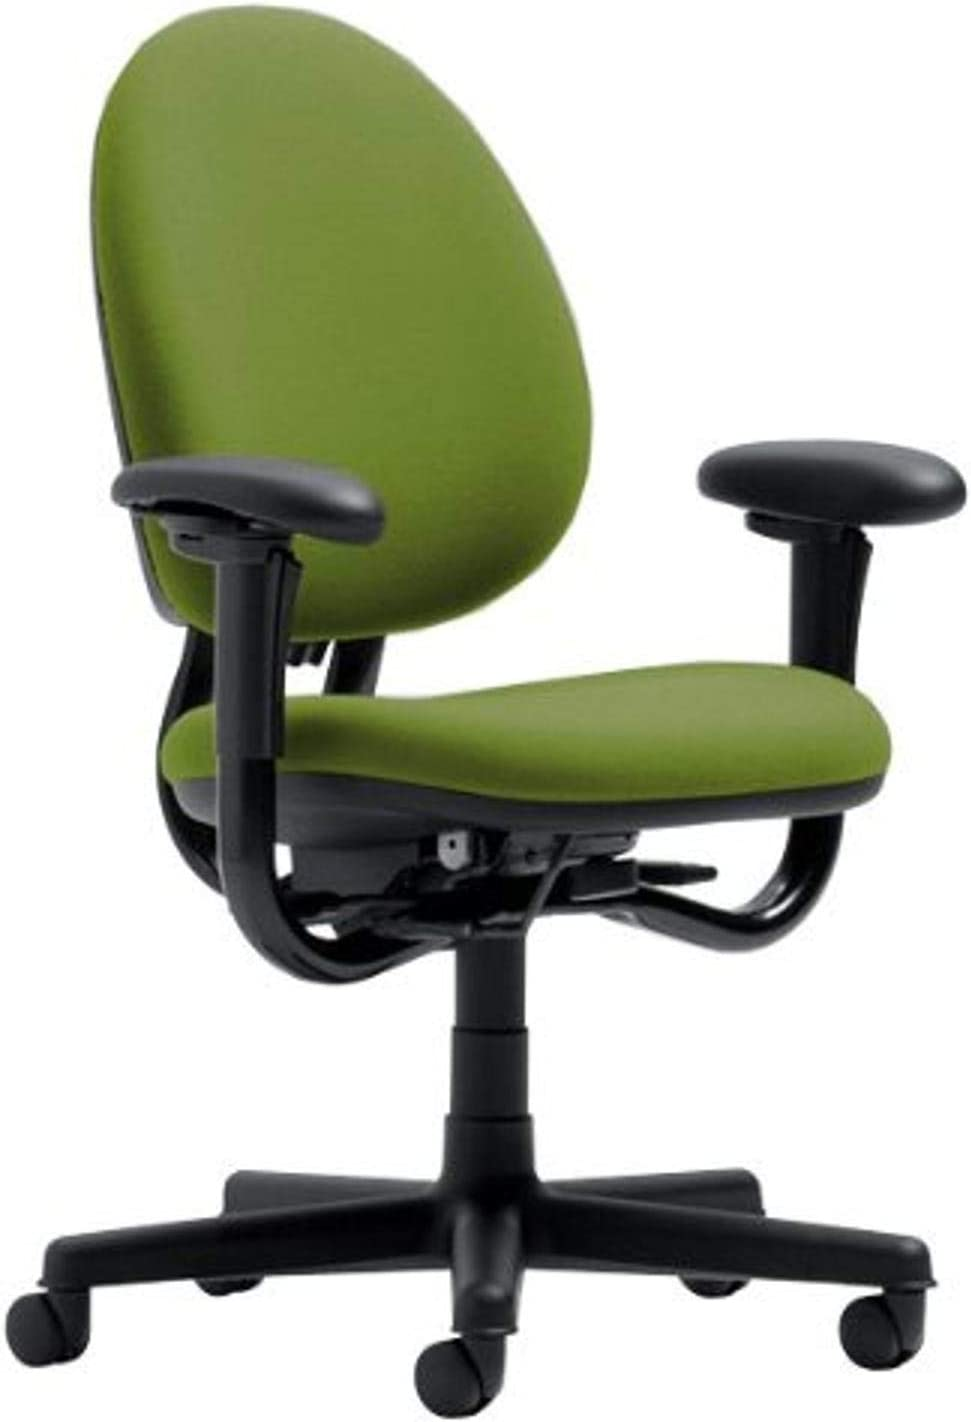 Steelcase Criterion Chair, Meadow Fabric -